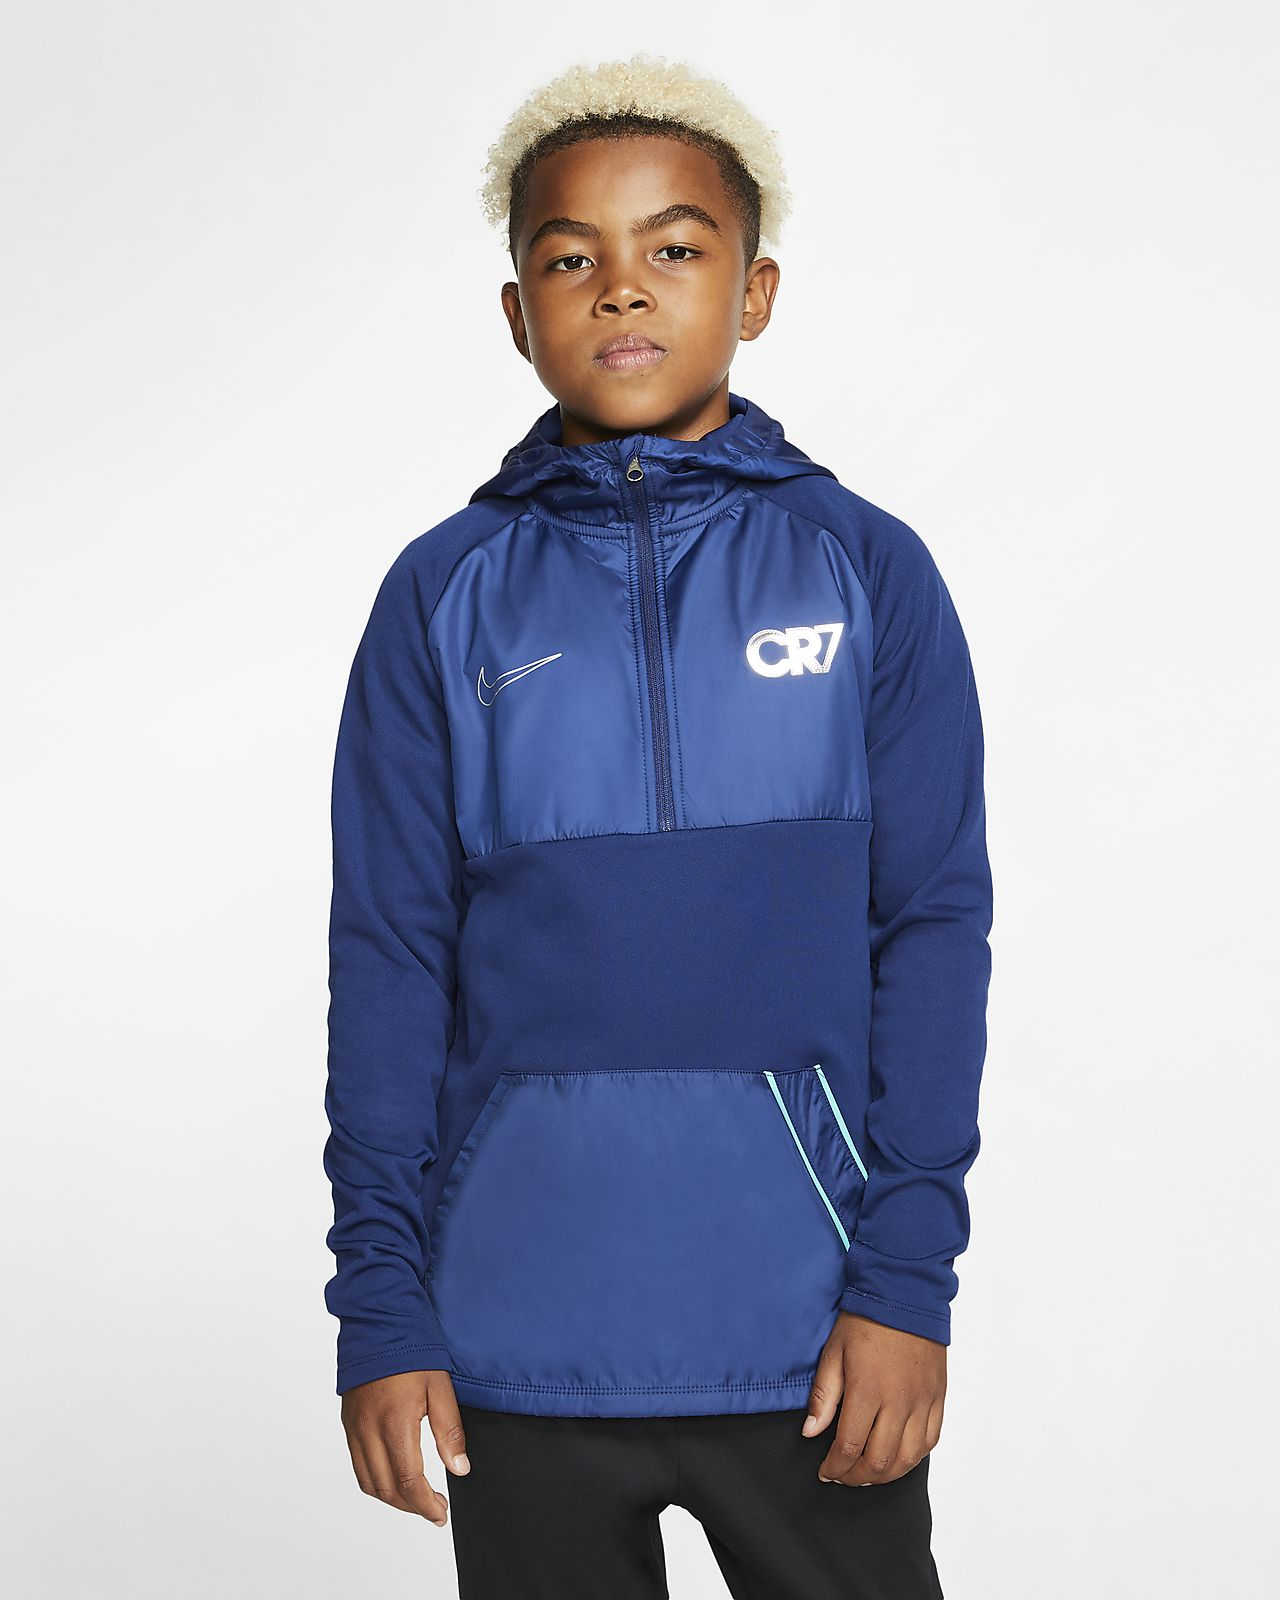 Nike Dri-FIT Repel CR7 Older Kids' Hooded Football Drill Top